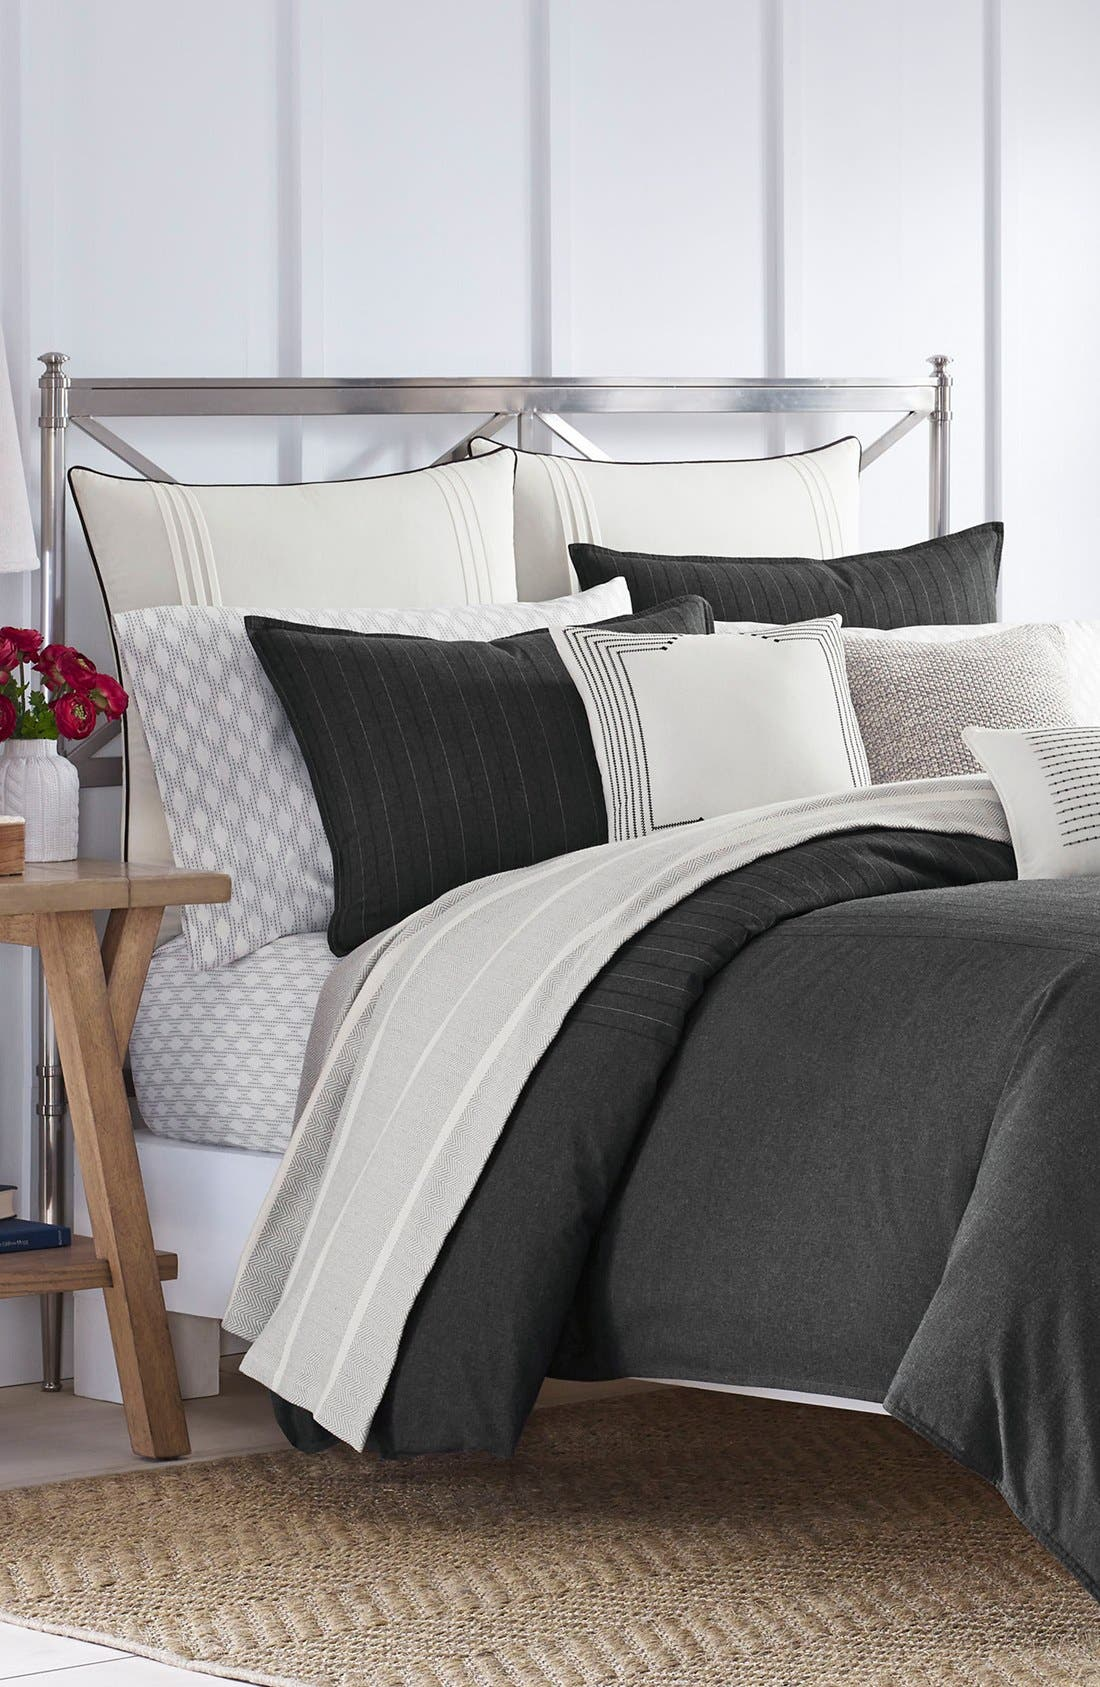 Alternate Image 1 Selected - Nautica Caldwell Comforter & Sham Set